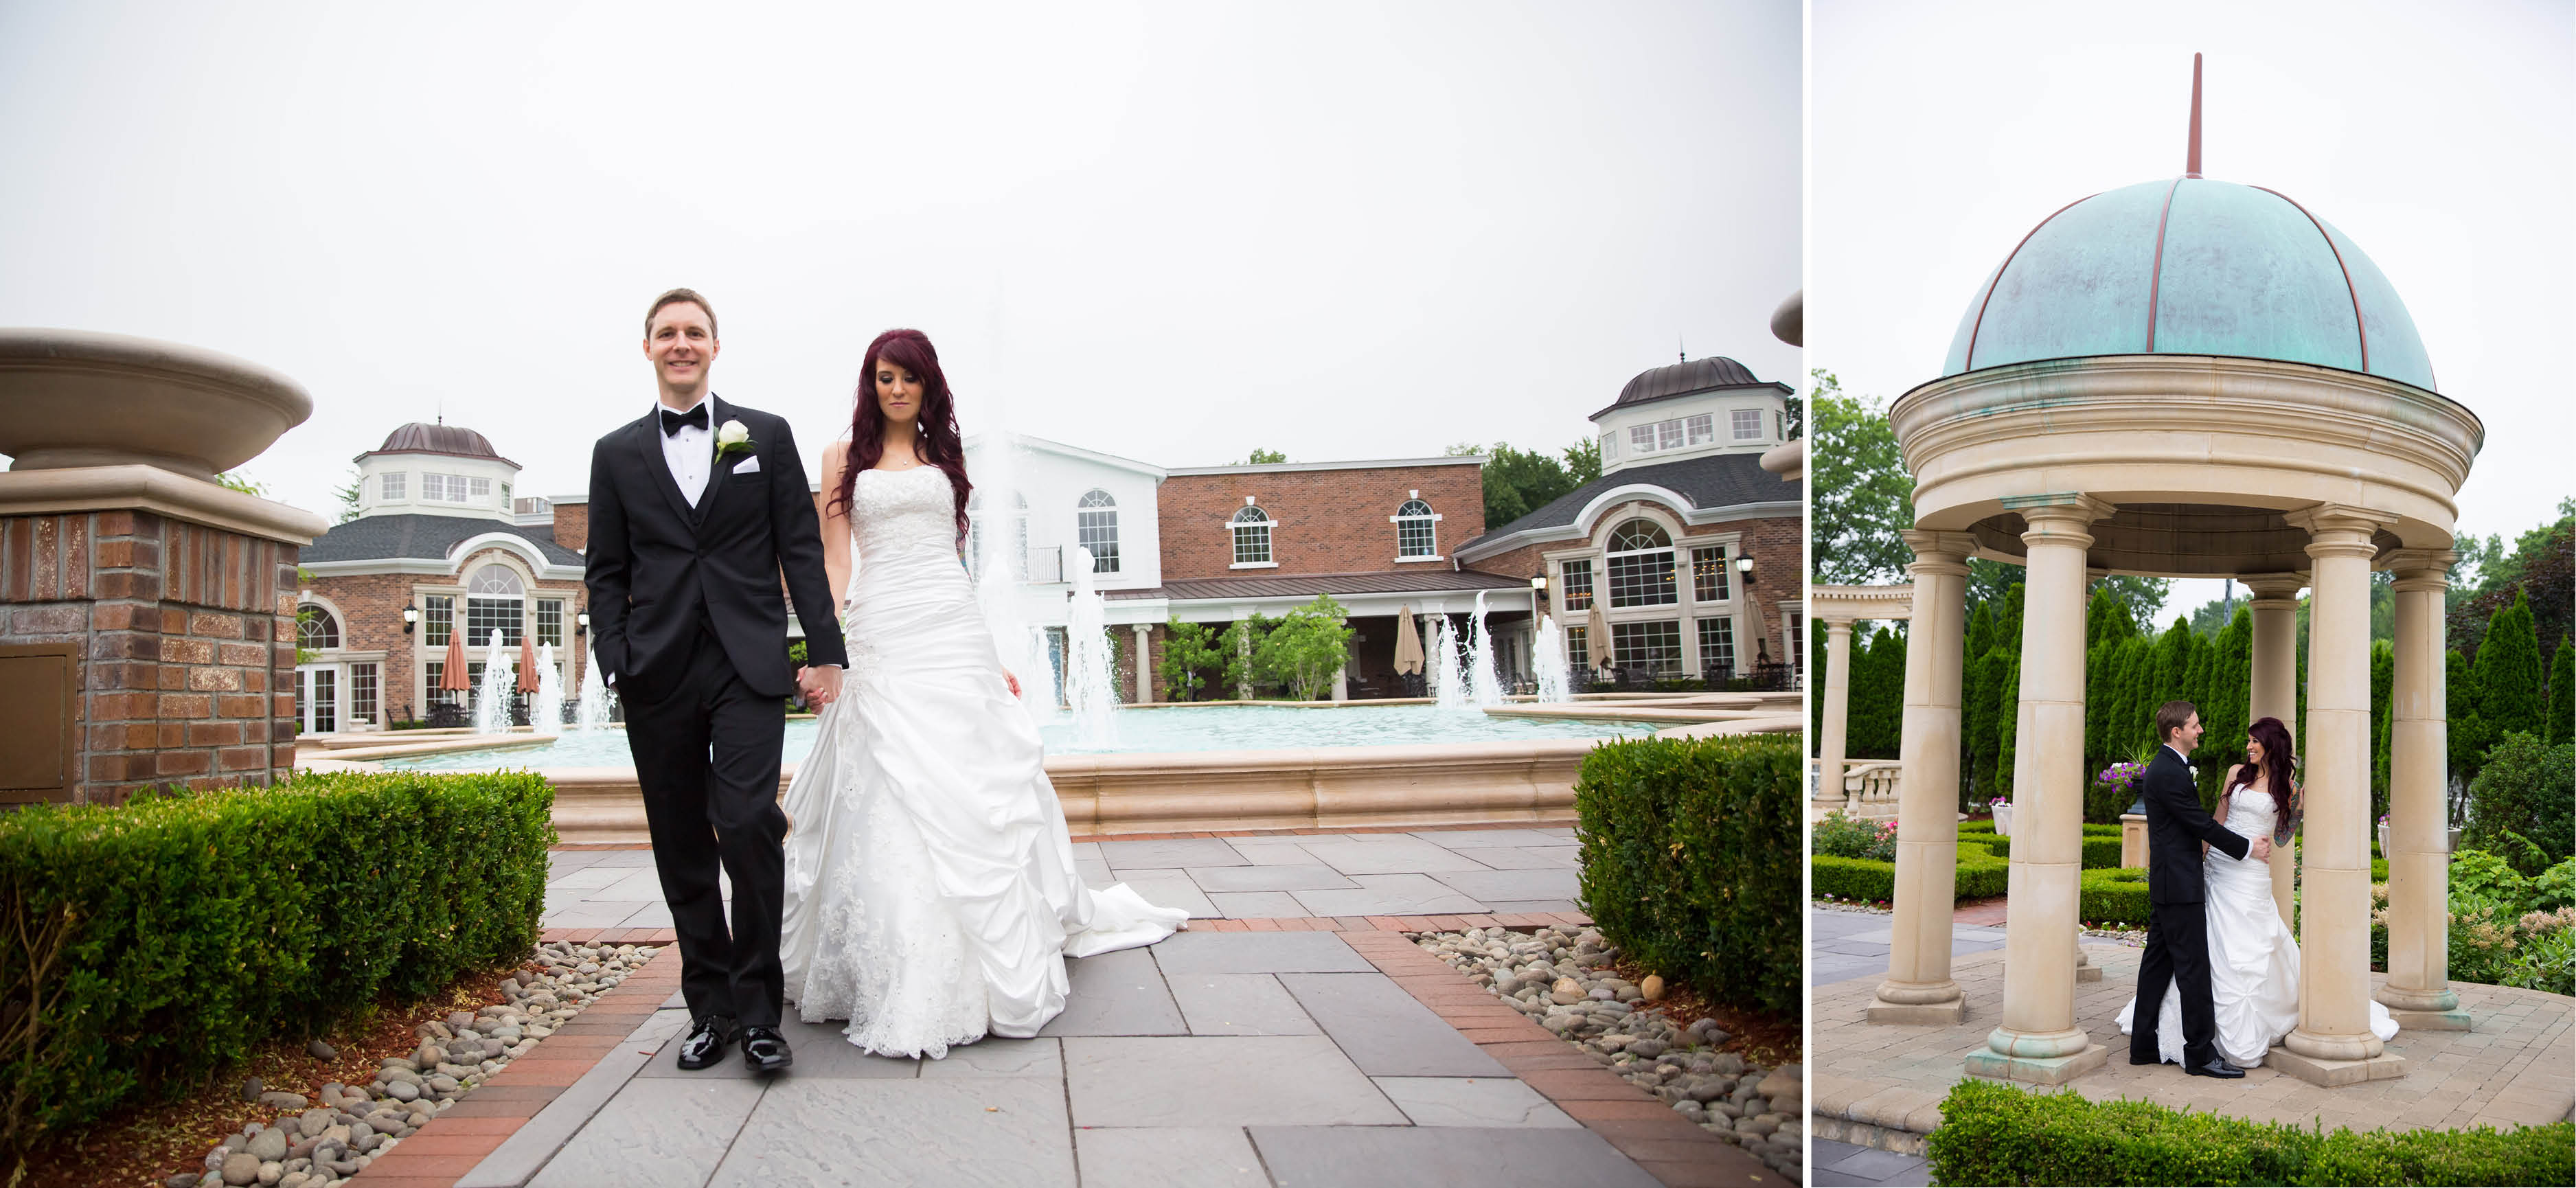 Emma_cleary_photography the Rockleigh NJ wedding10